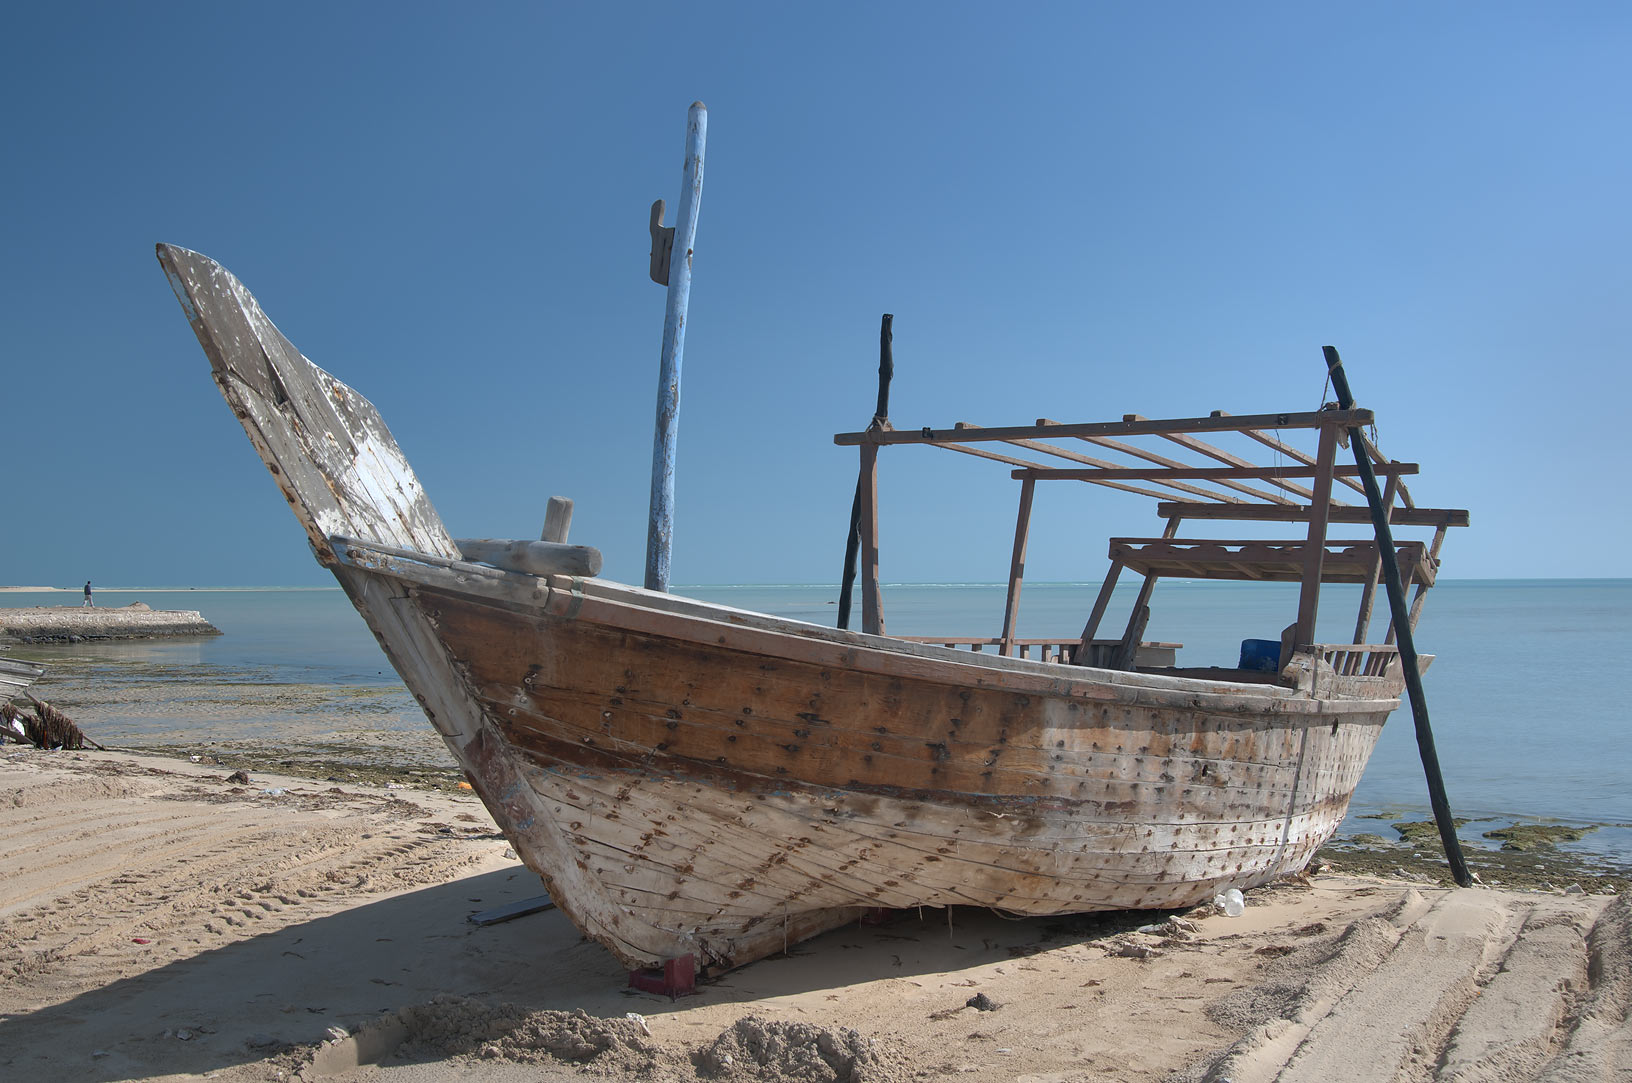 Beached traditional dhow boat in Al Wakra, Qatar